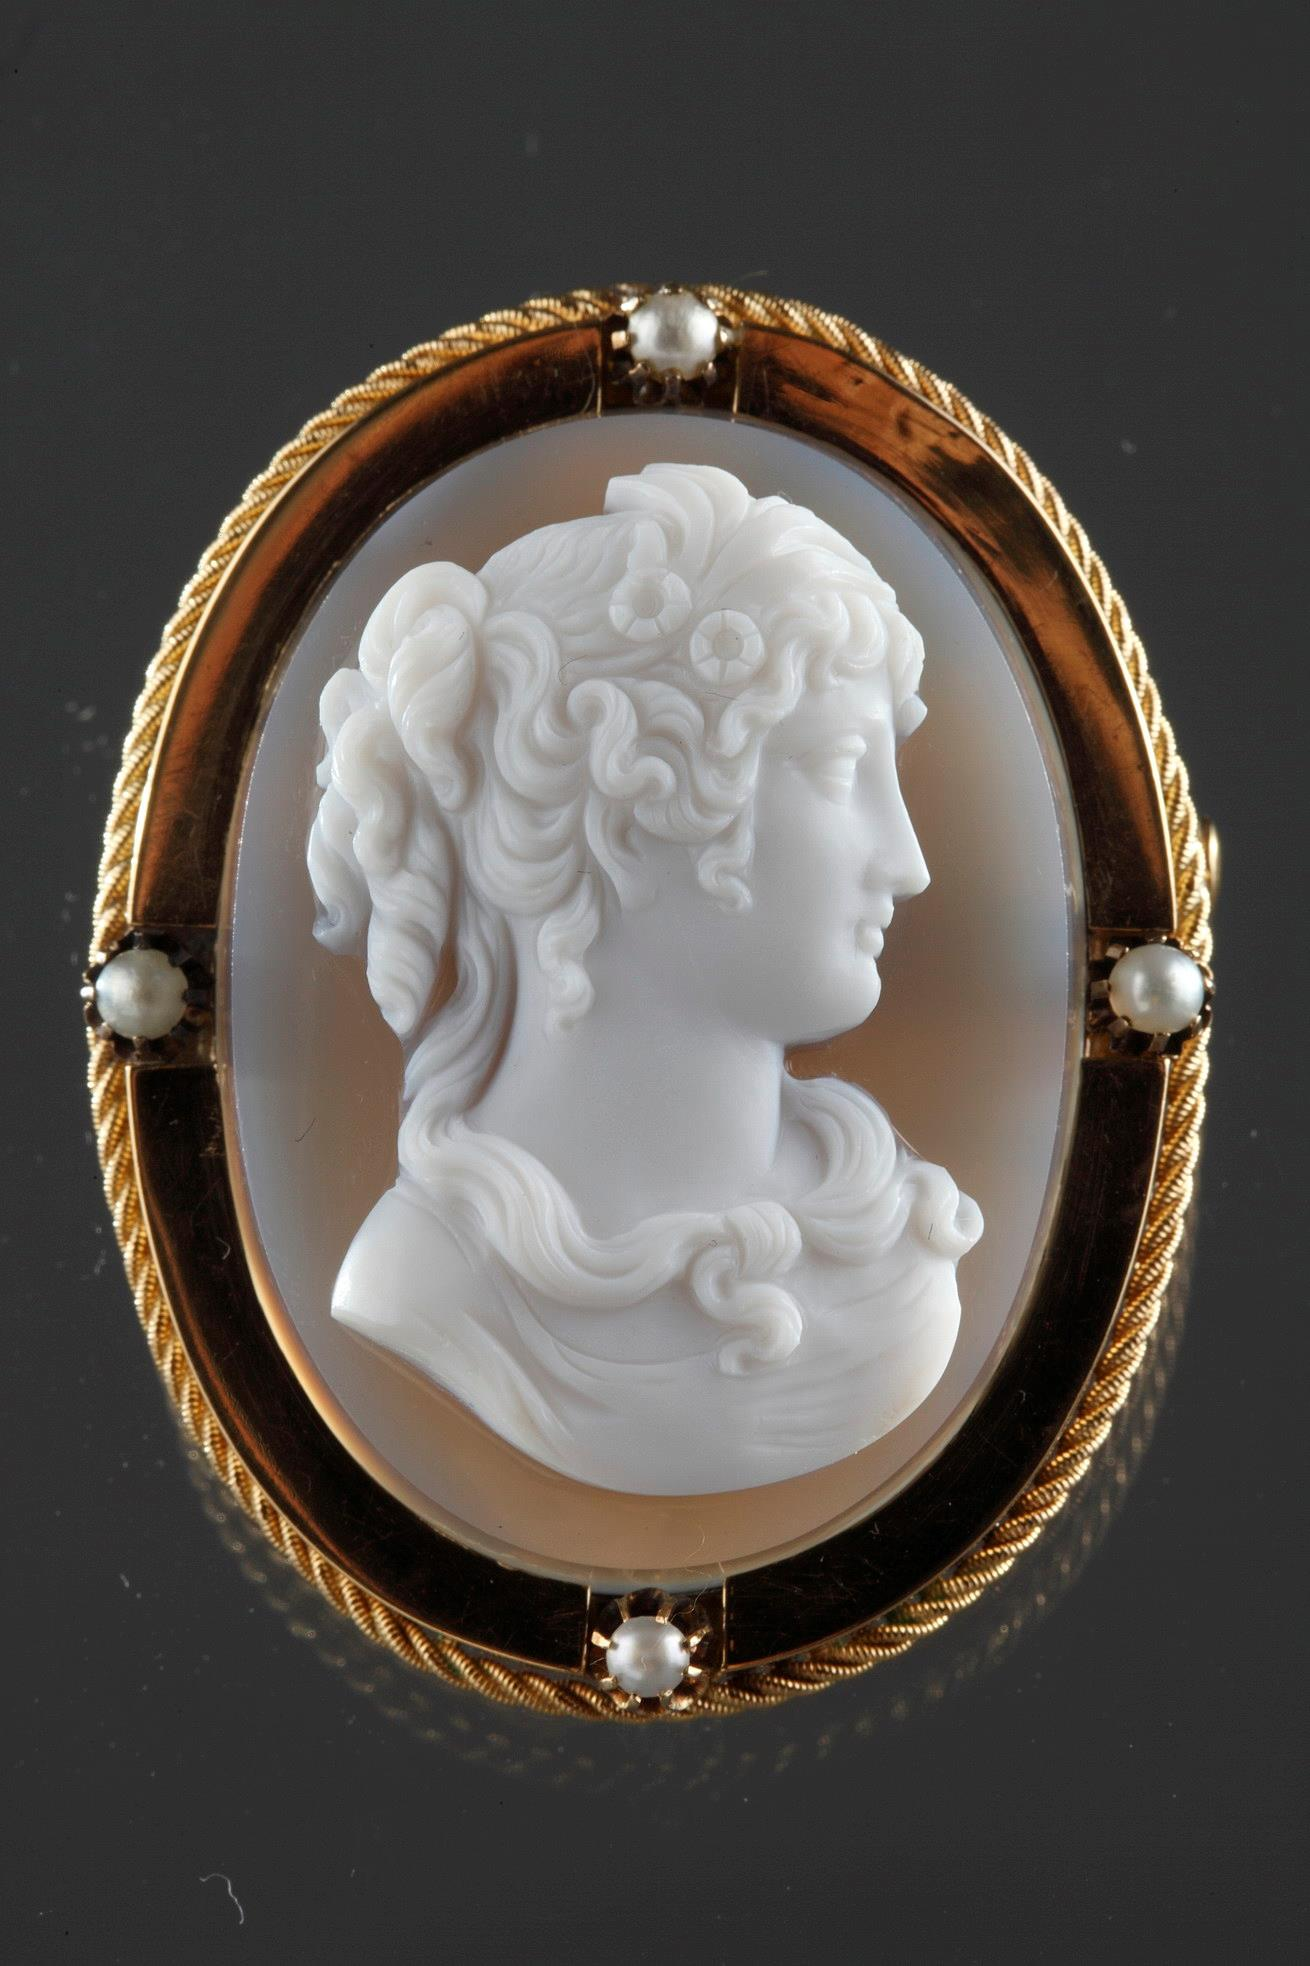 Mid-19th century Gold brooch-pendant with agate cameo.